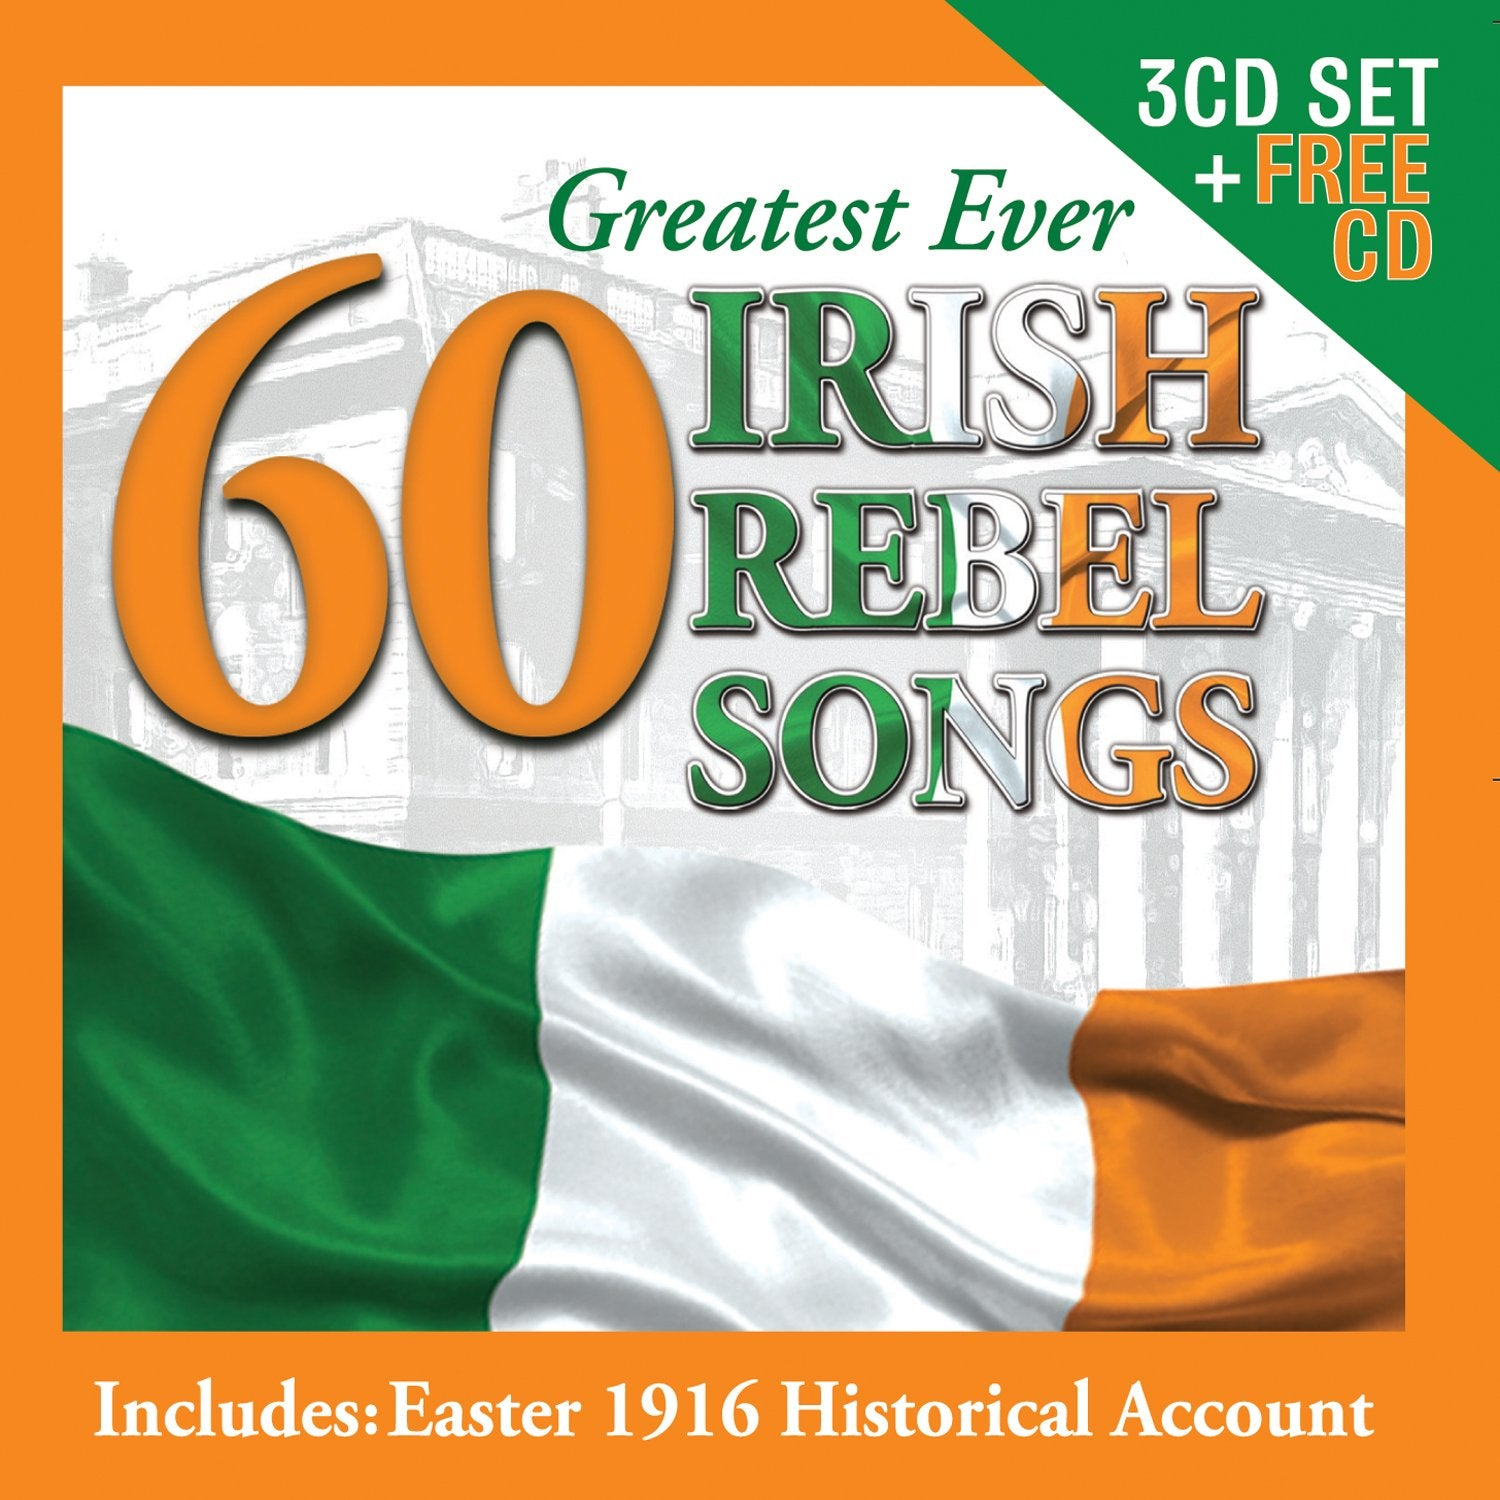 60 Greatest Ever Irish Rebel Songs [CD]